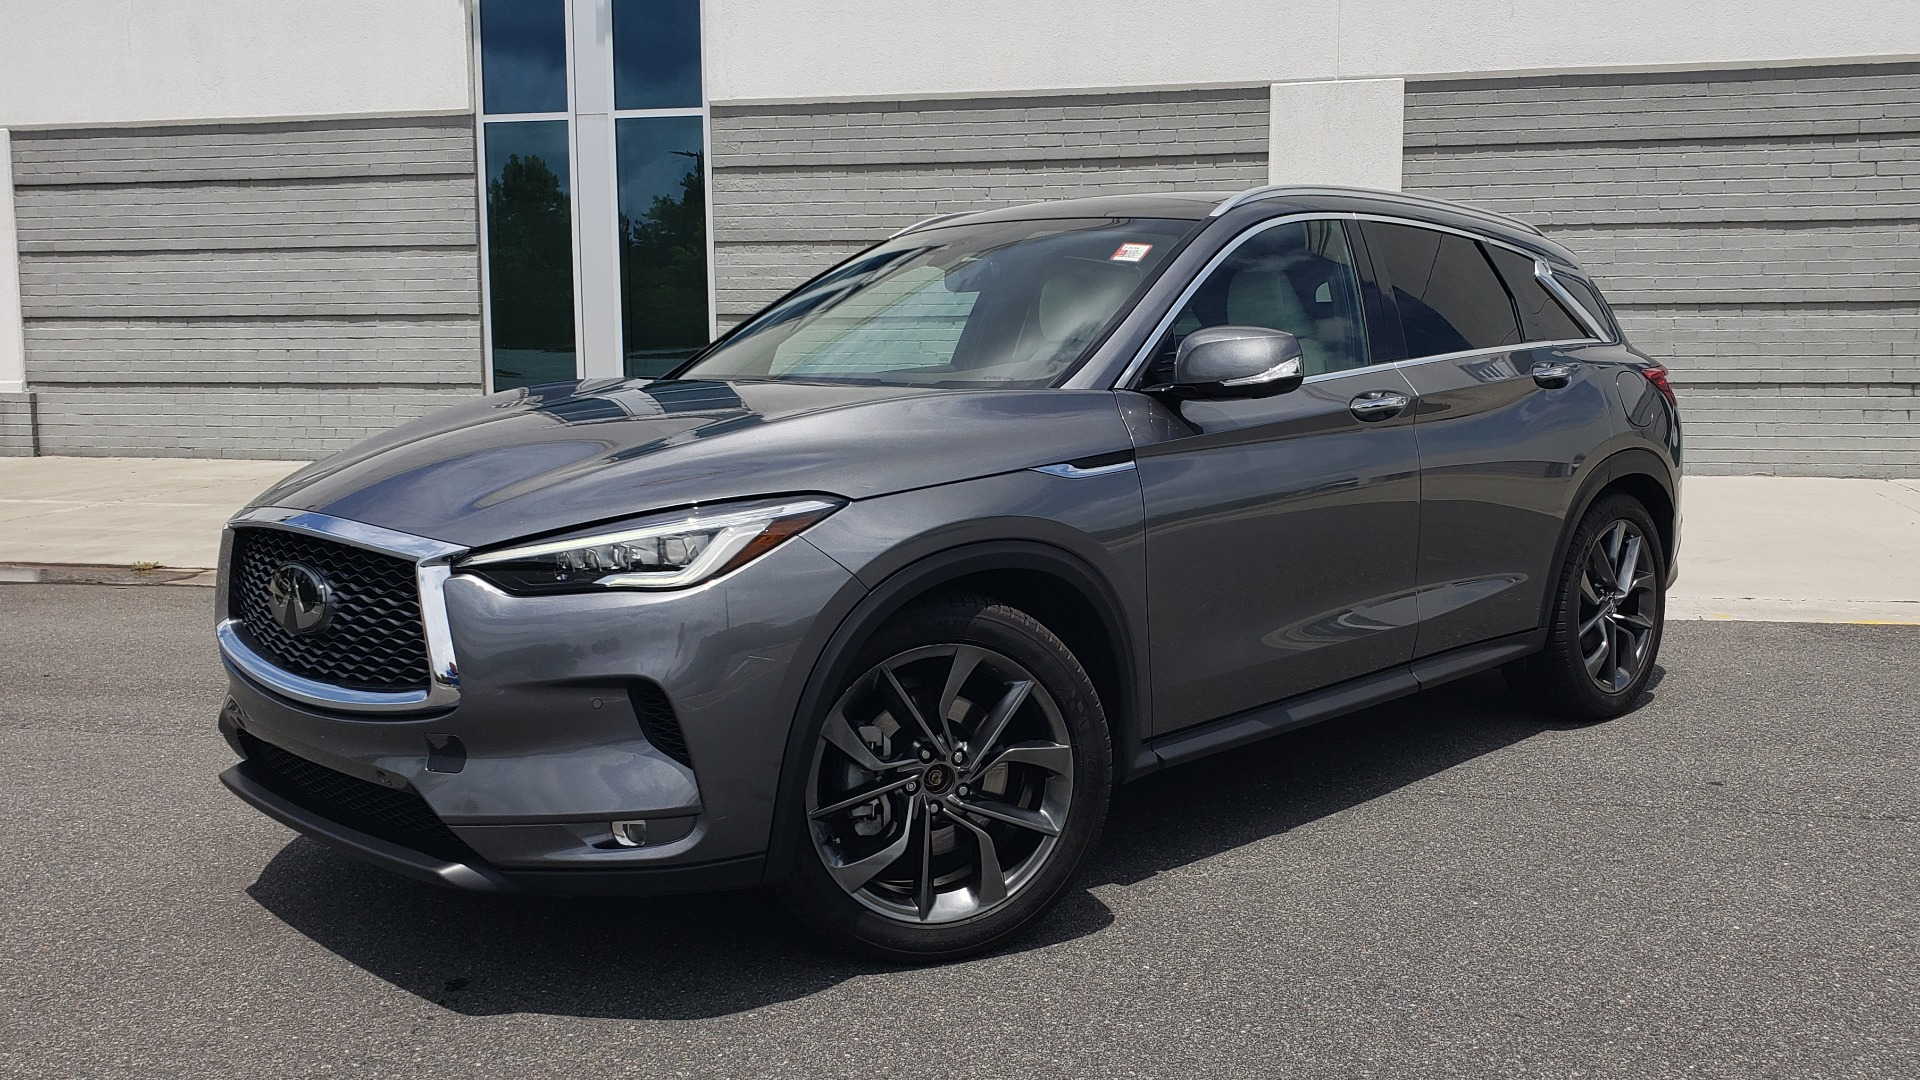 Used 2019 INFINITI QX50 ESSENTIAL / 2.0L / PROASSIST / PROACTIVE / AUTOGRAPH / SENSORY for sale $33,995 at Formula Imports in Charlotte NC 28227 1